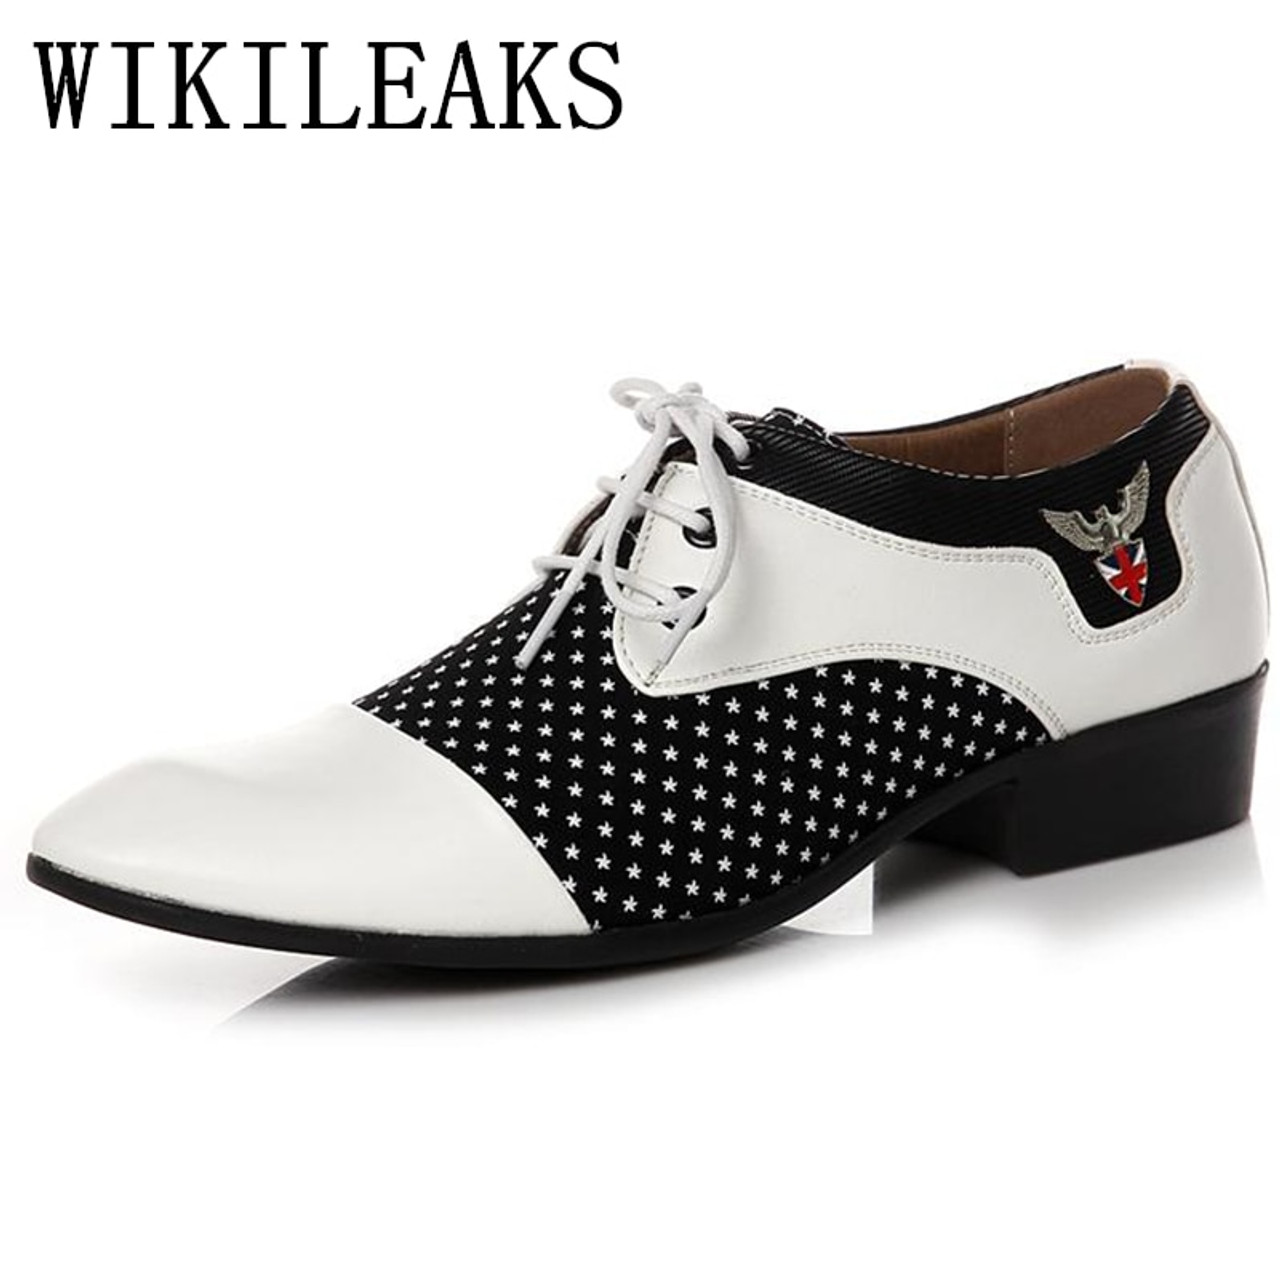 ad09758ee49 formal shoes designer versi italian luxury brand wedding shoes mens pointed  toe dress shoes man leather oxford shoes for men